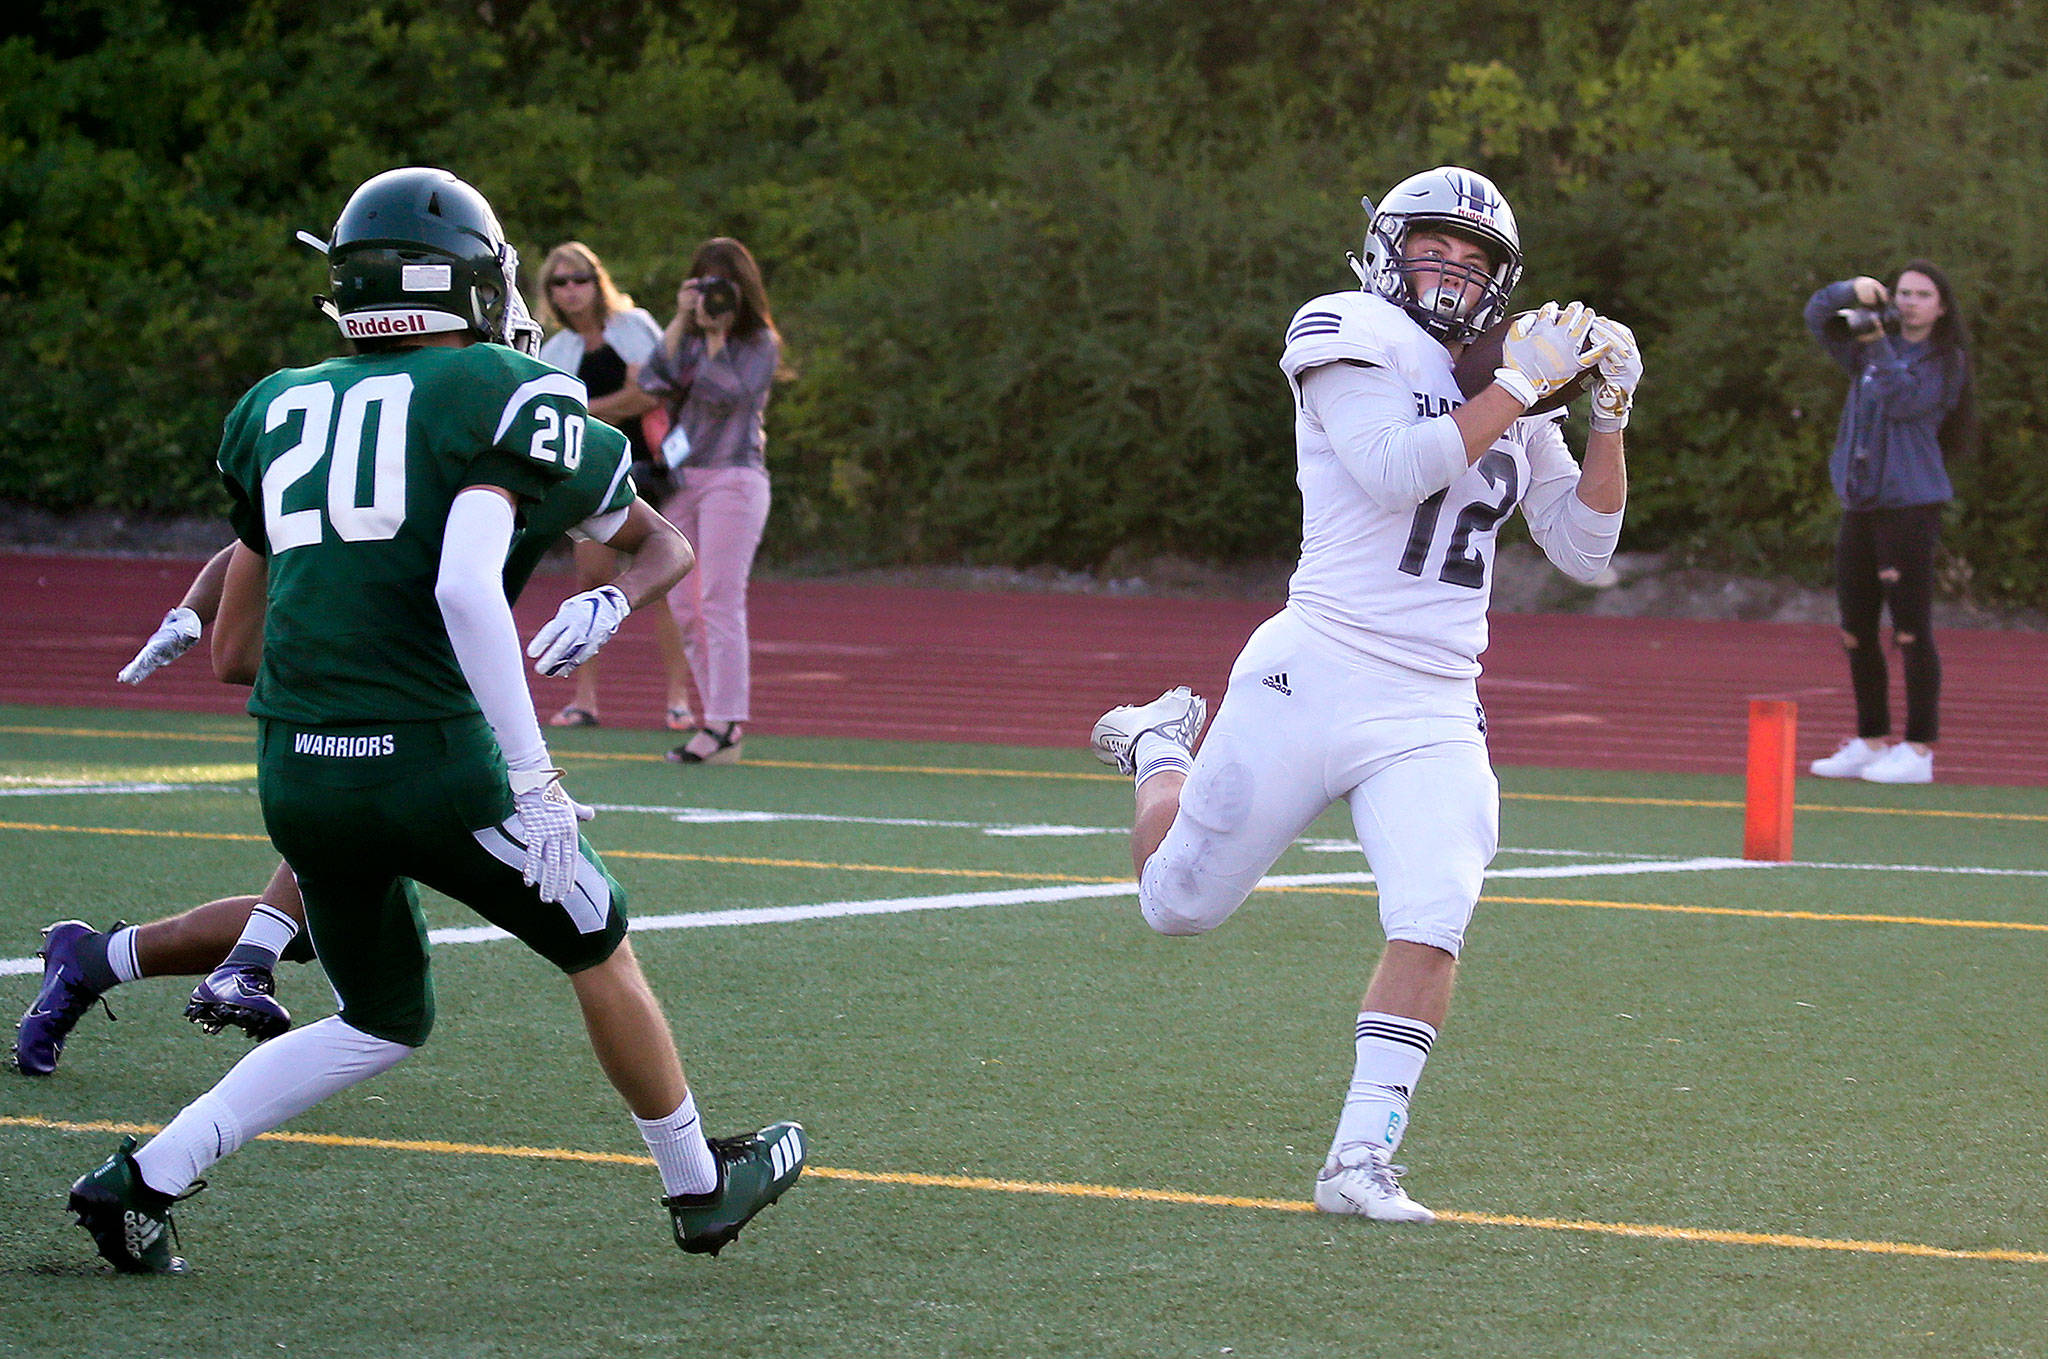 Glacier Peak's Brayden Corwin hauls in a pass for a touchdown as Glacier Peak beat Edmonds-Woodway 35-14, in their season opening football game for both teams, at Edmonds Stadium on Friday, Sept. 6, 2019 in Edmonds, Wash. (Andy Bronson / The Herald)